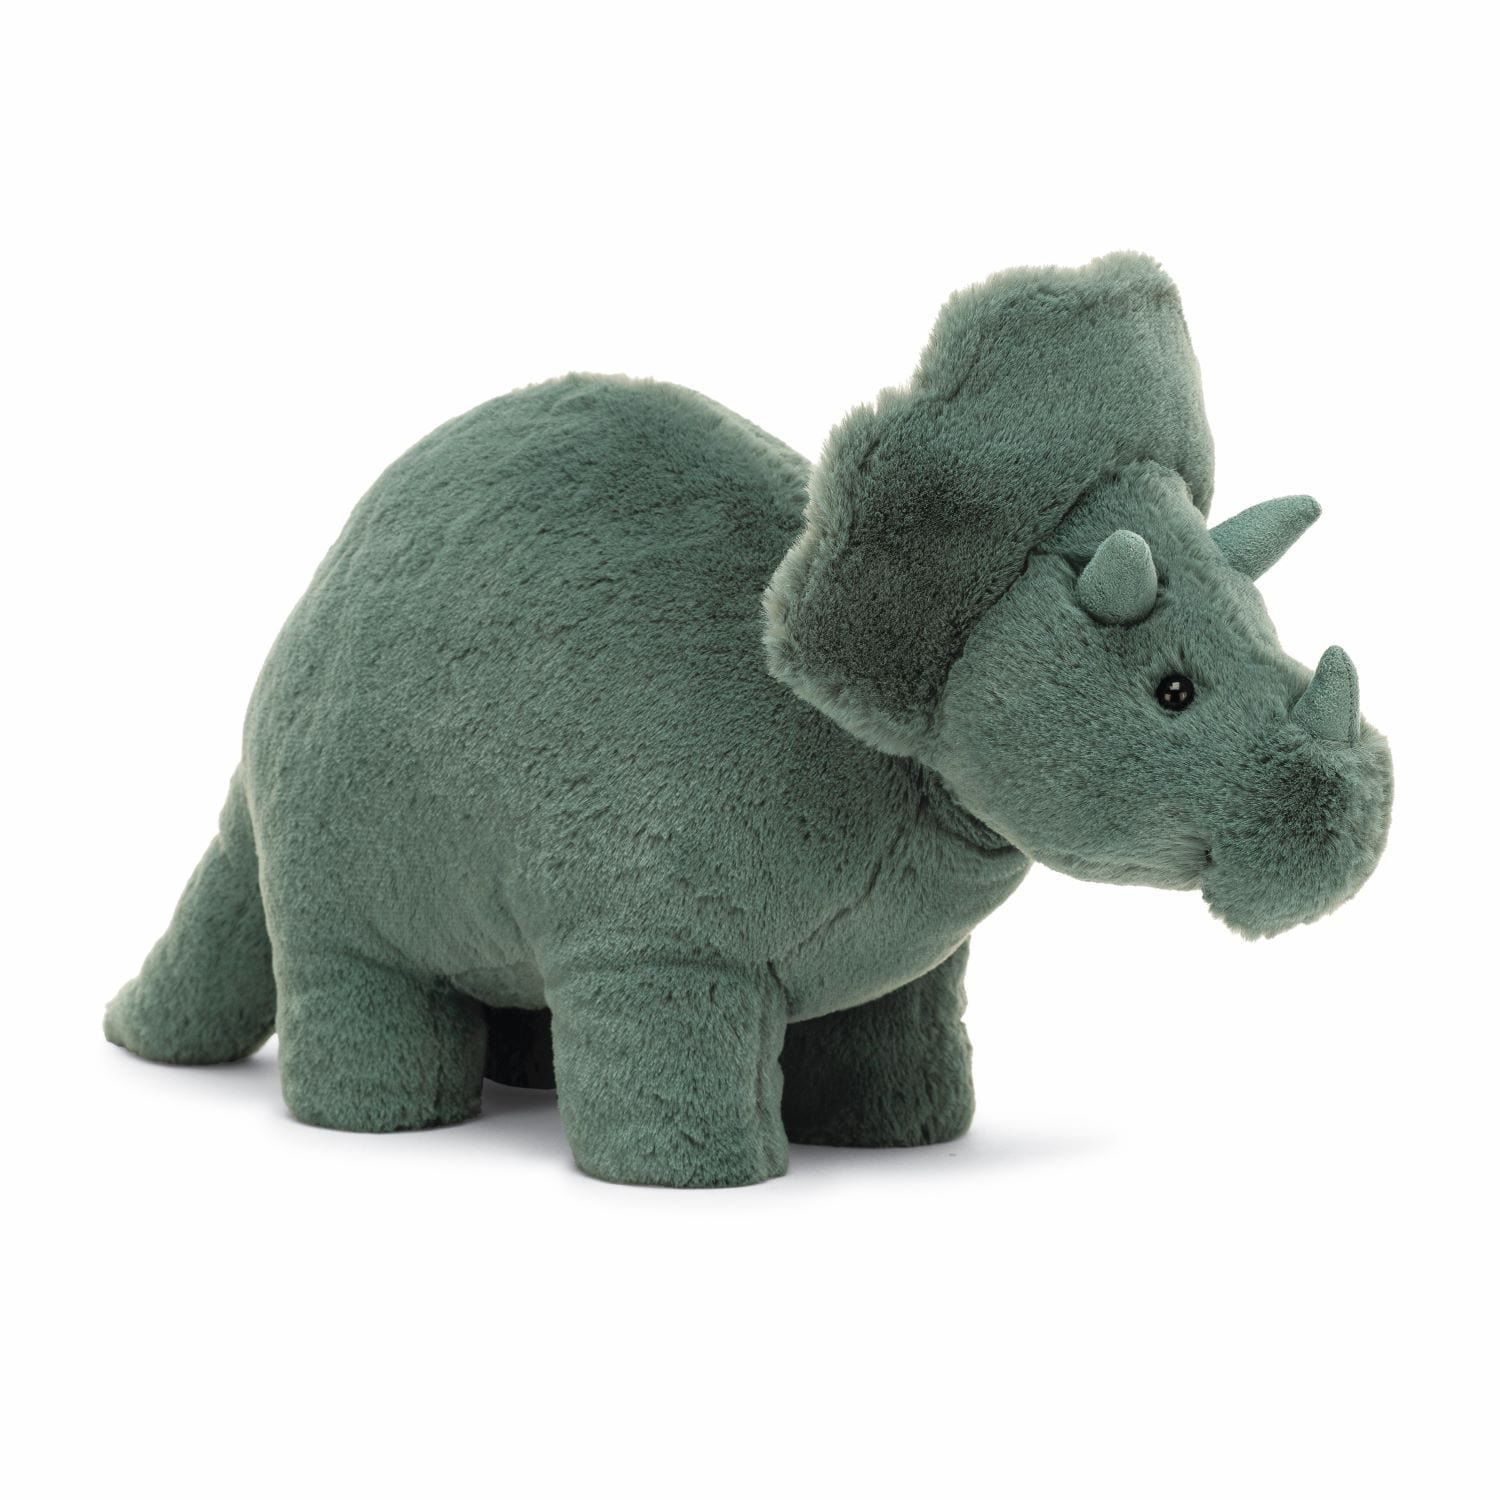 JellyCat Jelly Cat Fossilly Triceratops